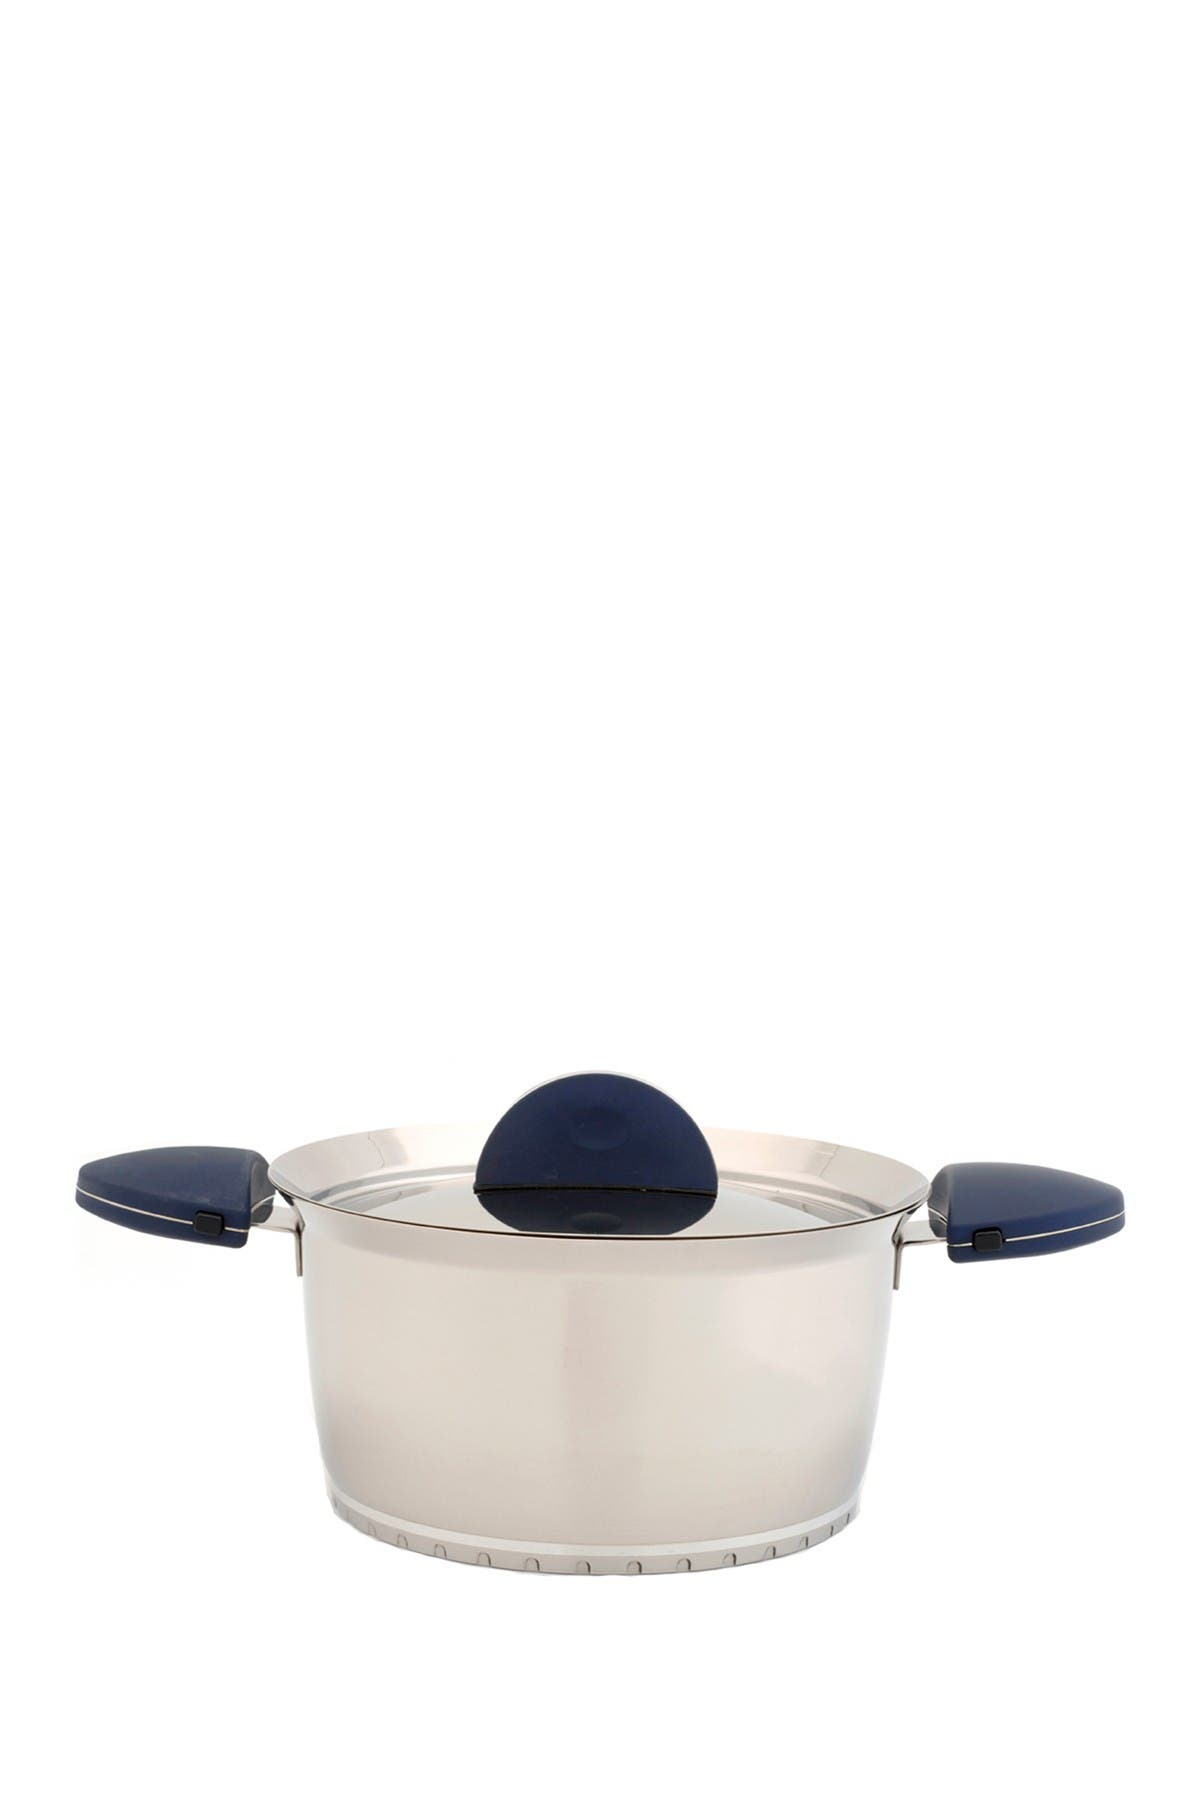 """Image of BergHOFF Blue Stacca 10"""" Covered Stock Pot"""